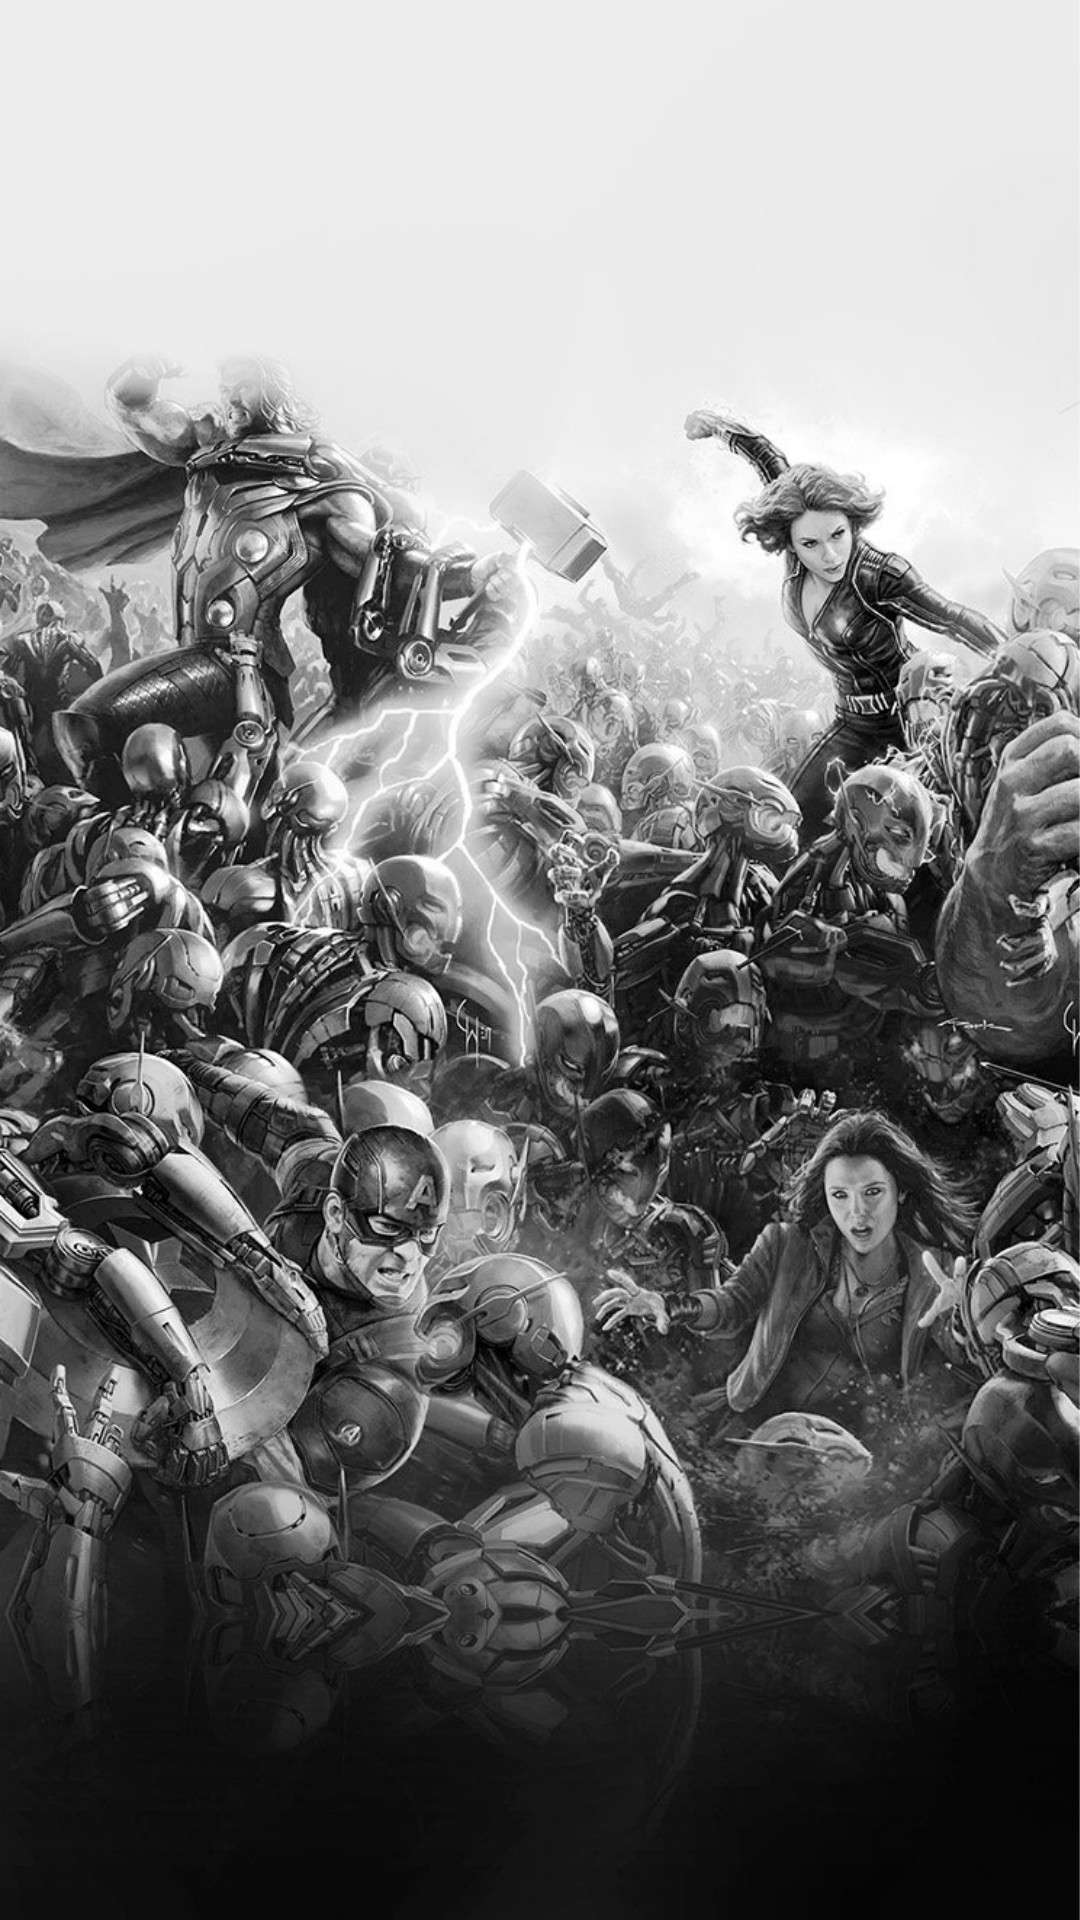 Download Wallpaper 1920×1080 Avengers age of ultron, Marvel … | Download  Wallpaper | Pinterest | Avengers wallpaper, Wallpaper and Wallpaper  downloads